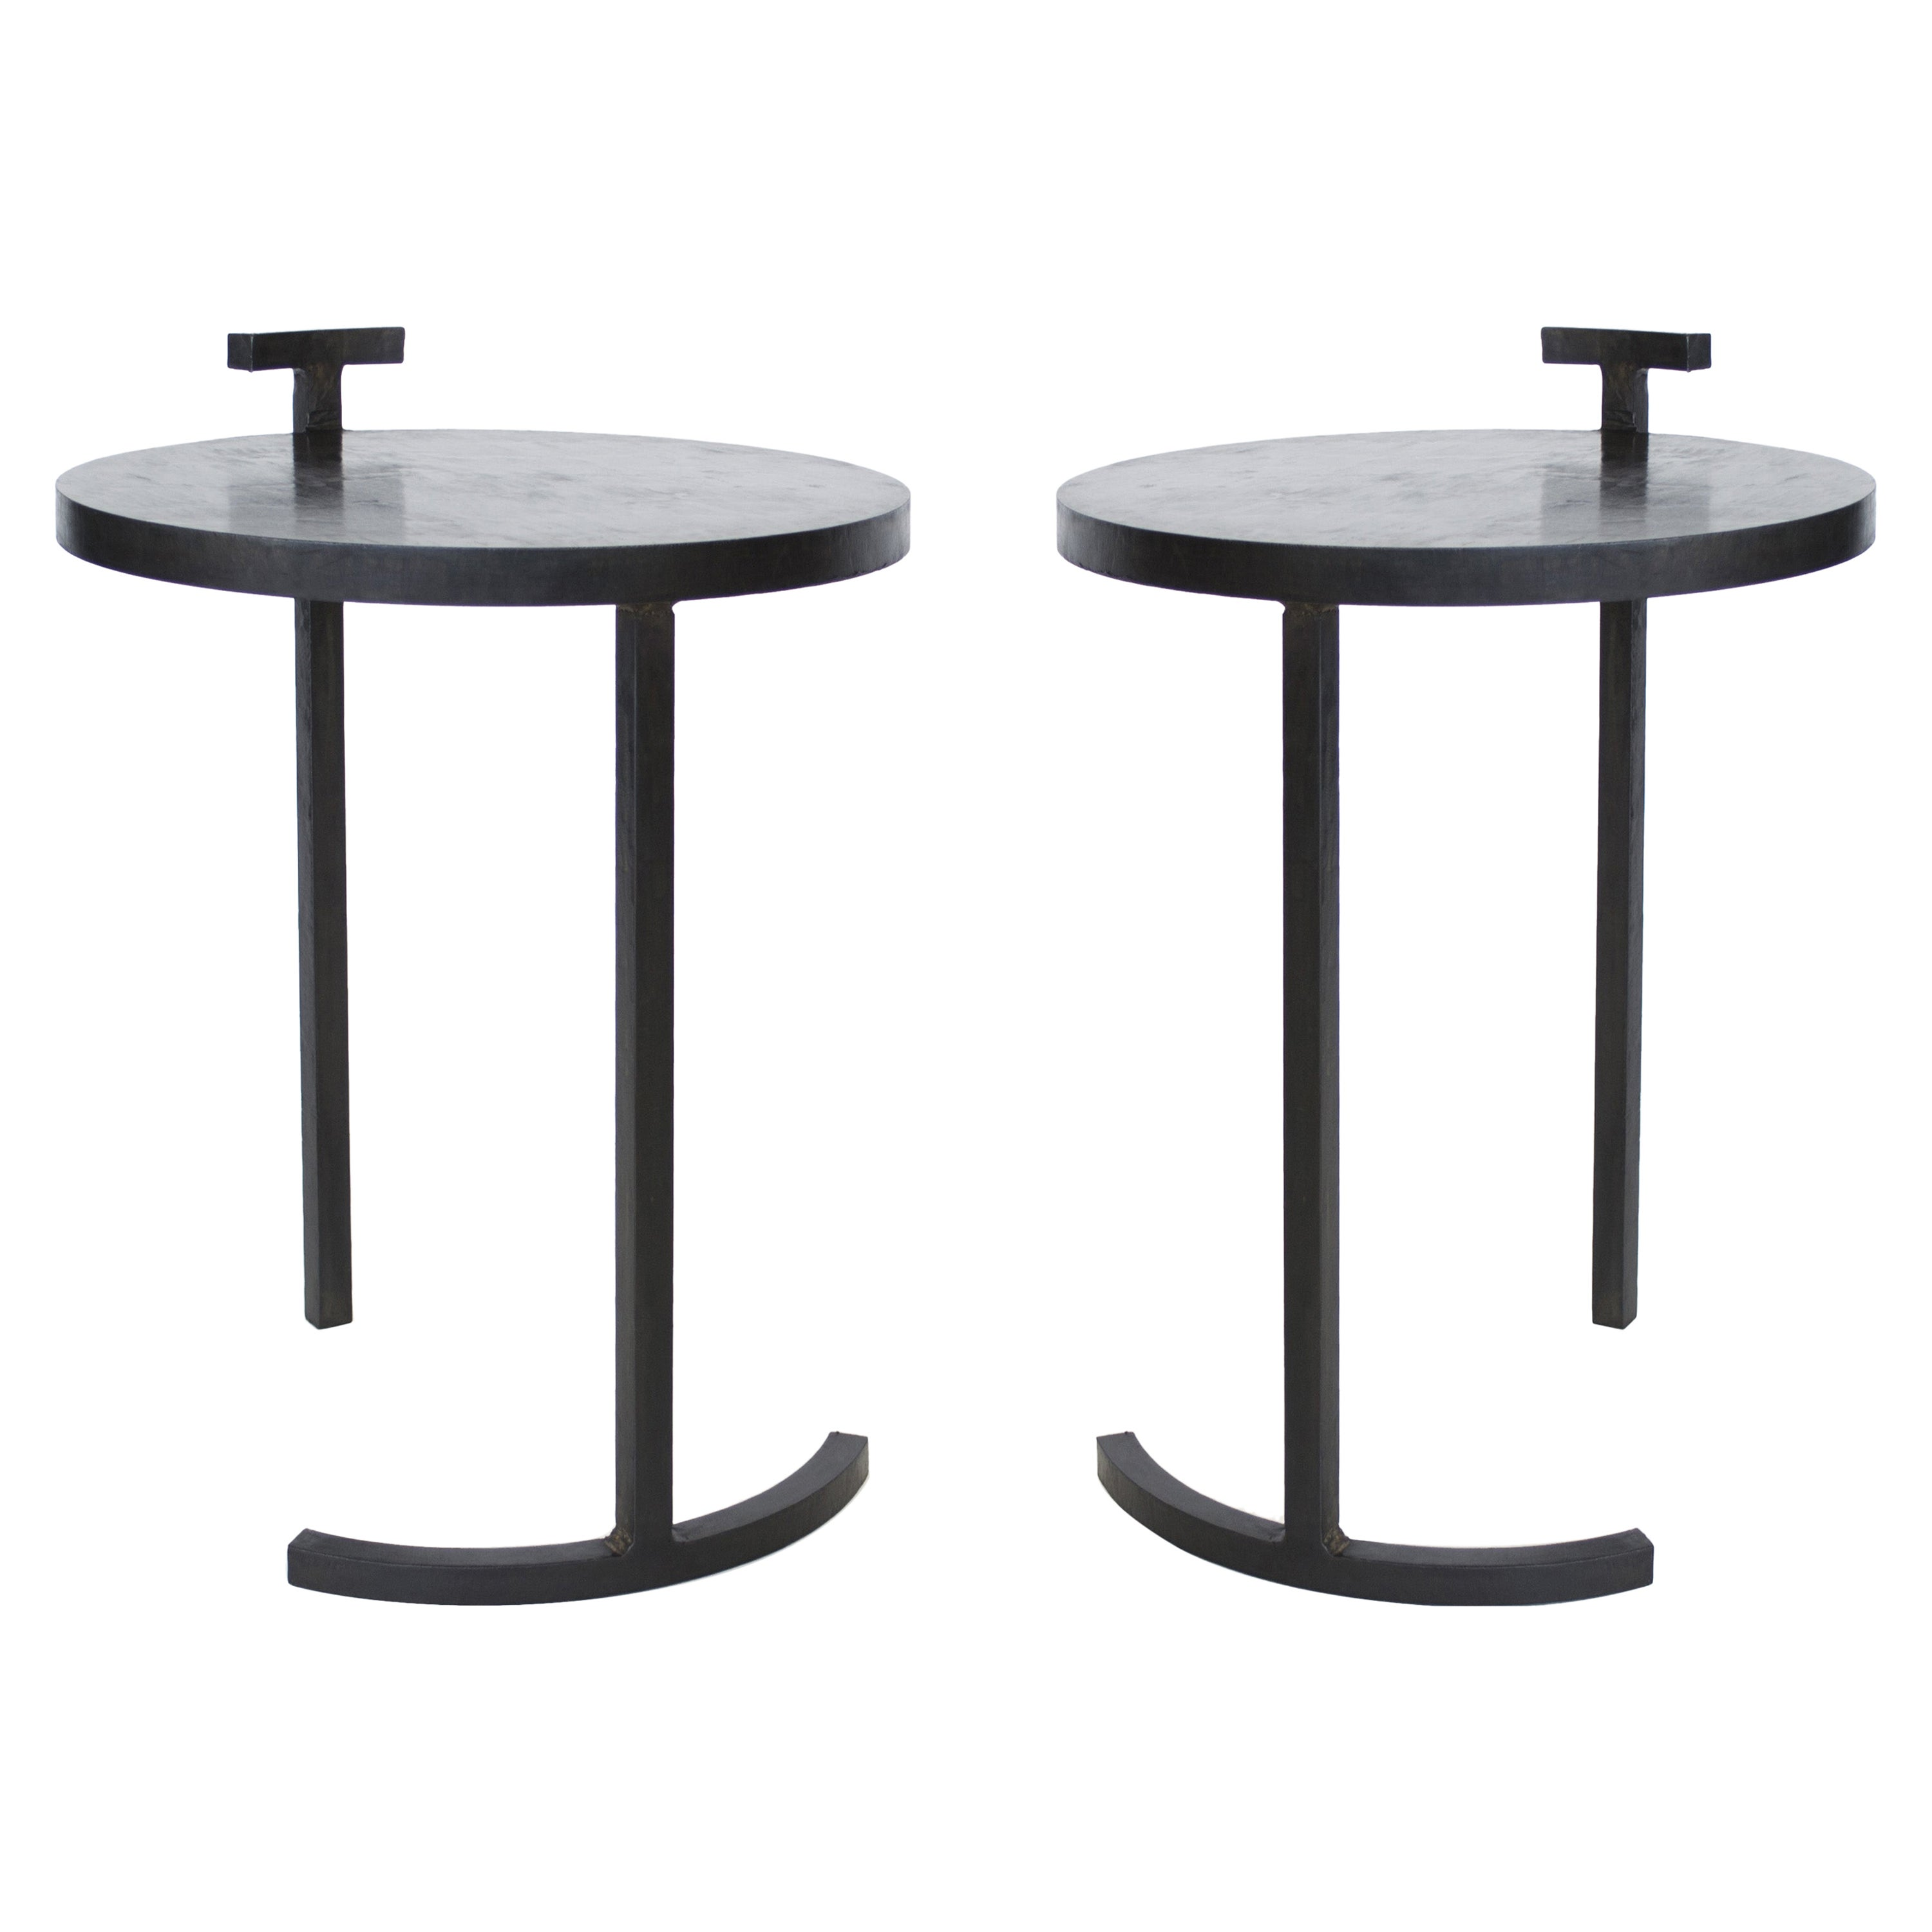 Pair of Modern Side Tables Minimalist Handmade in Cast Blackened and Waxed Steel